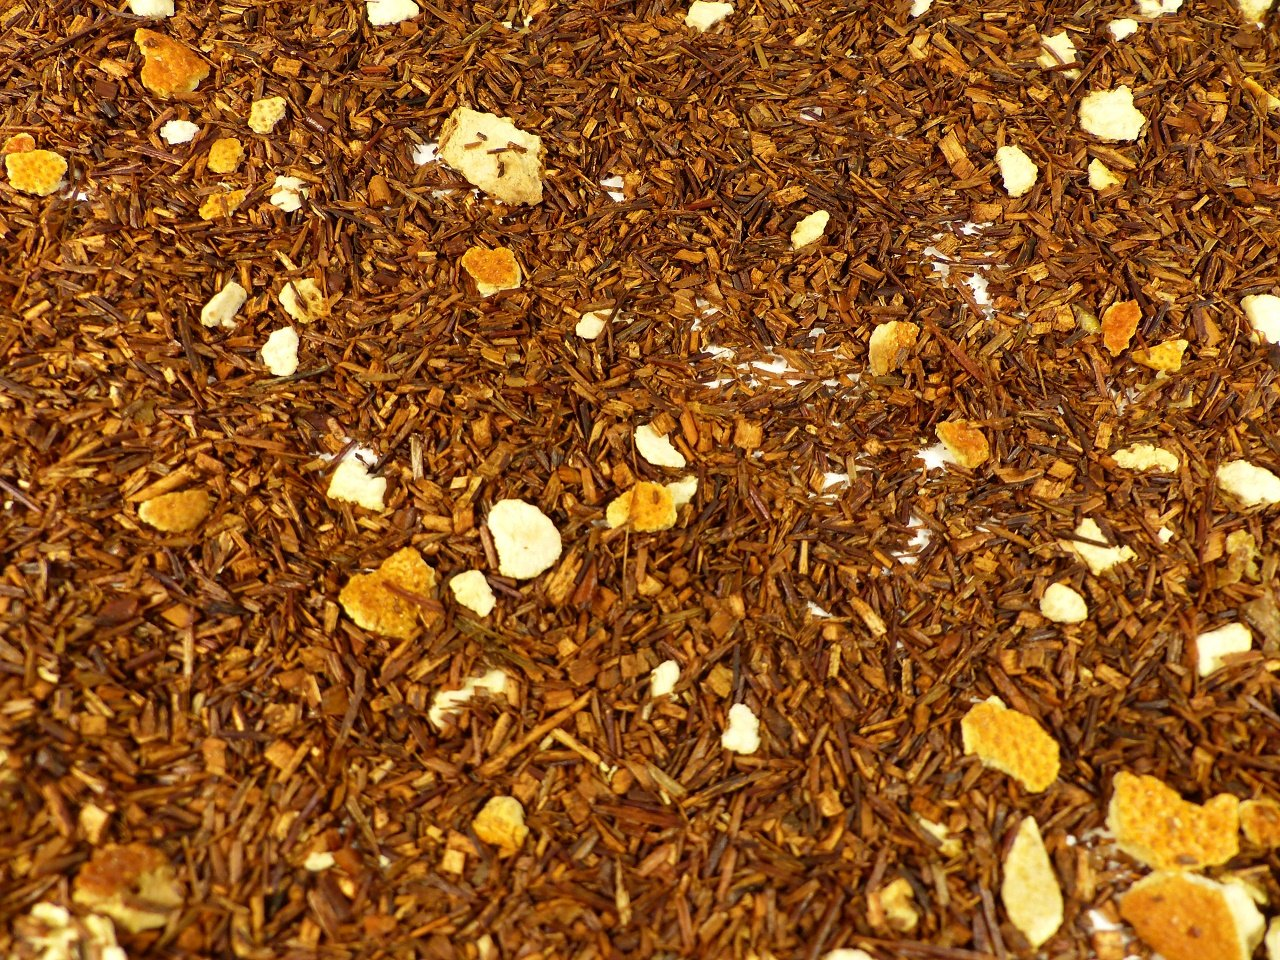 Orange-Rooibos-Tee-Naturideen-100g